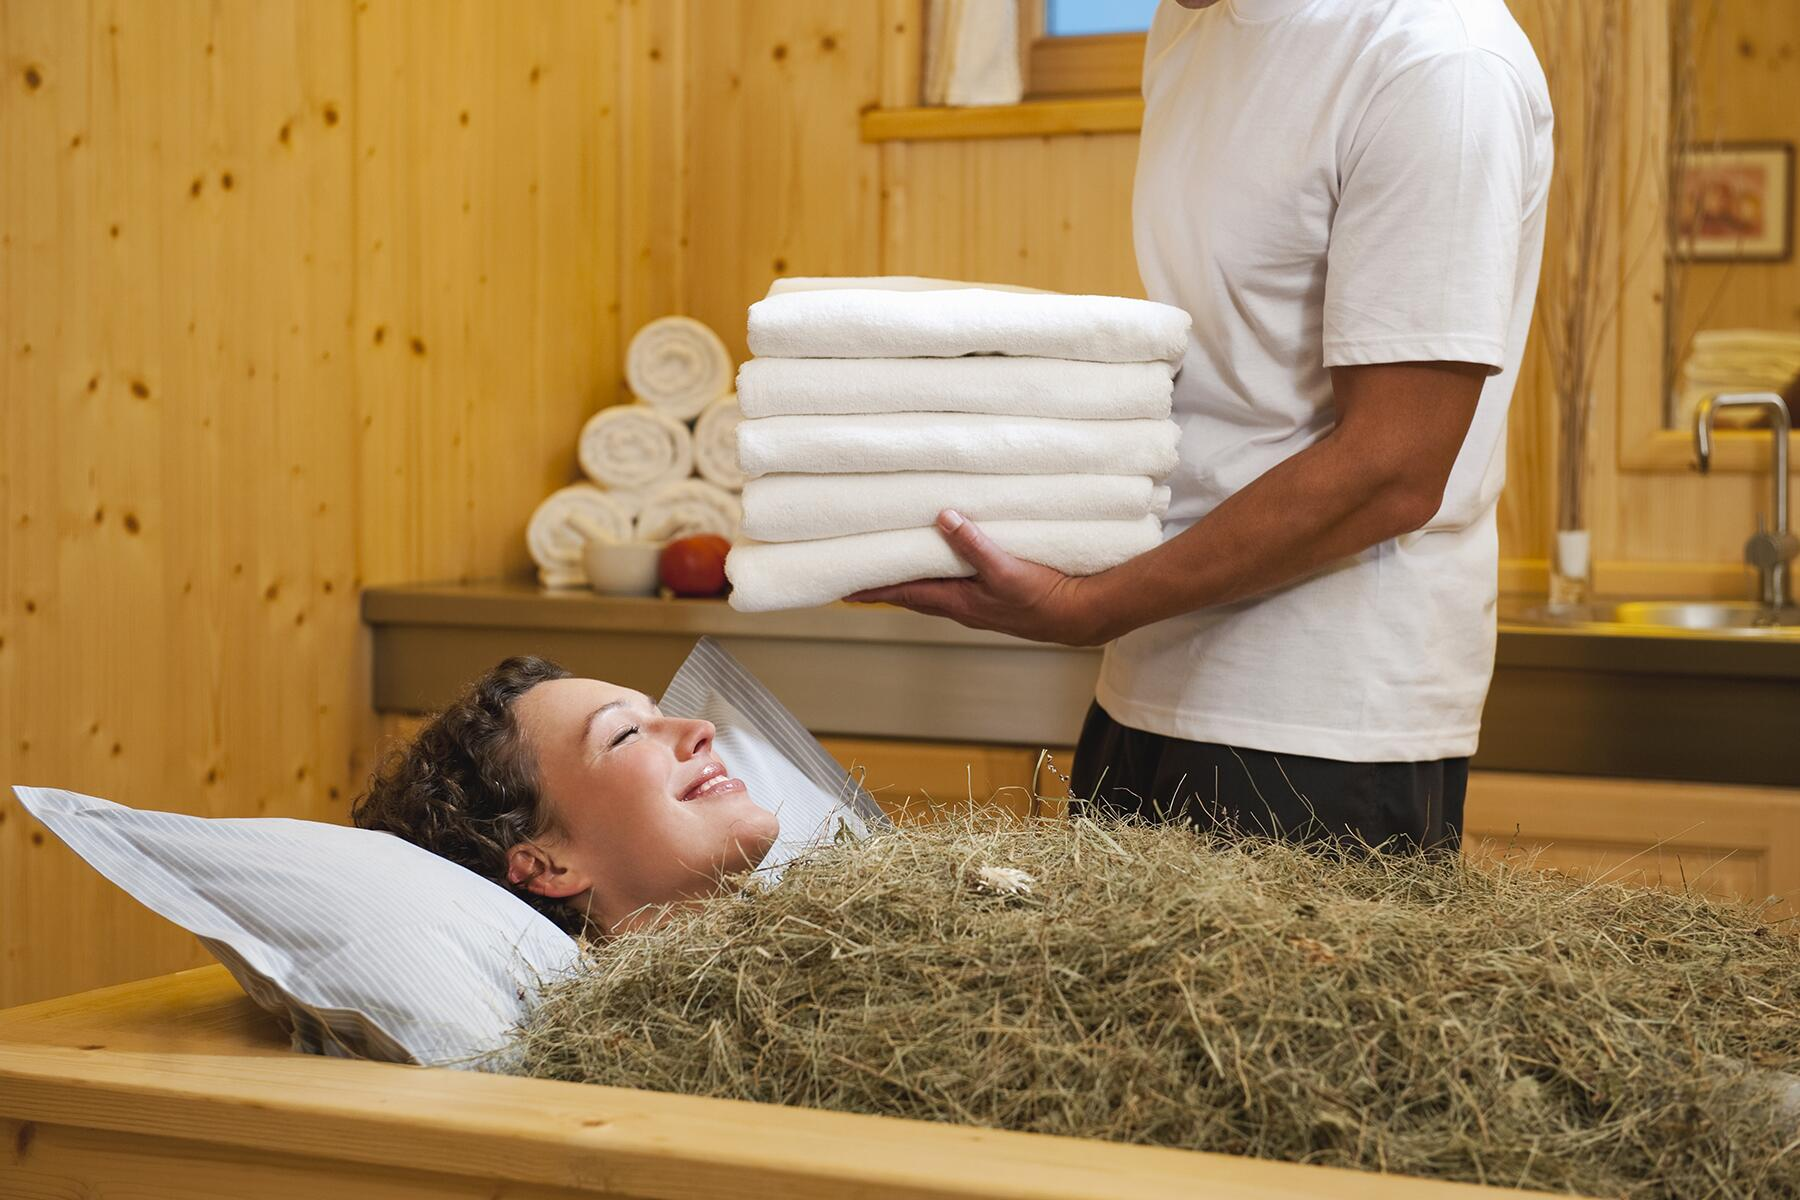 6 Very Unusual Spa Offerings That You May Not Find Relaxing